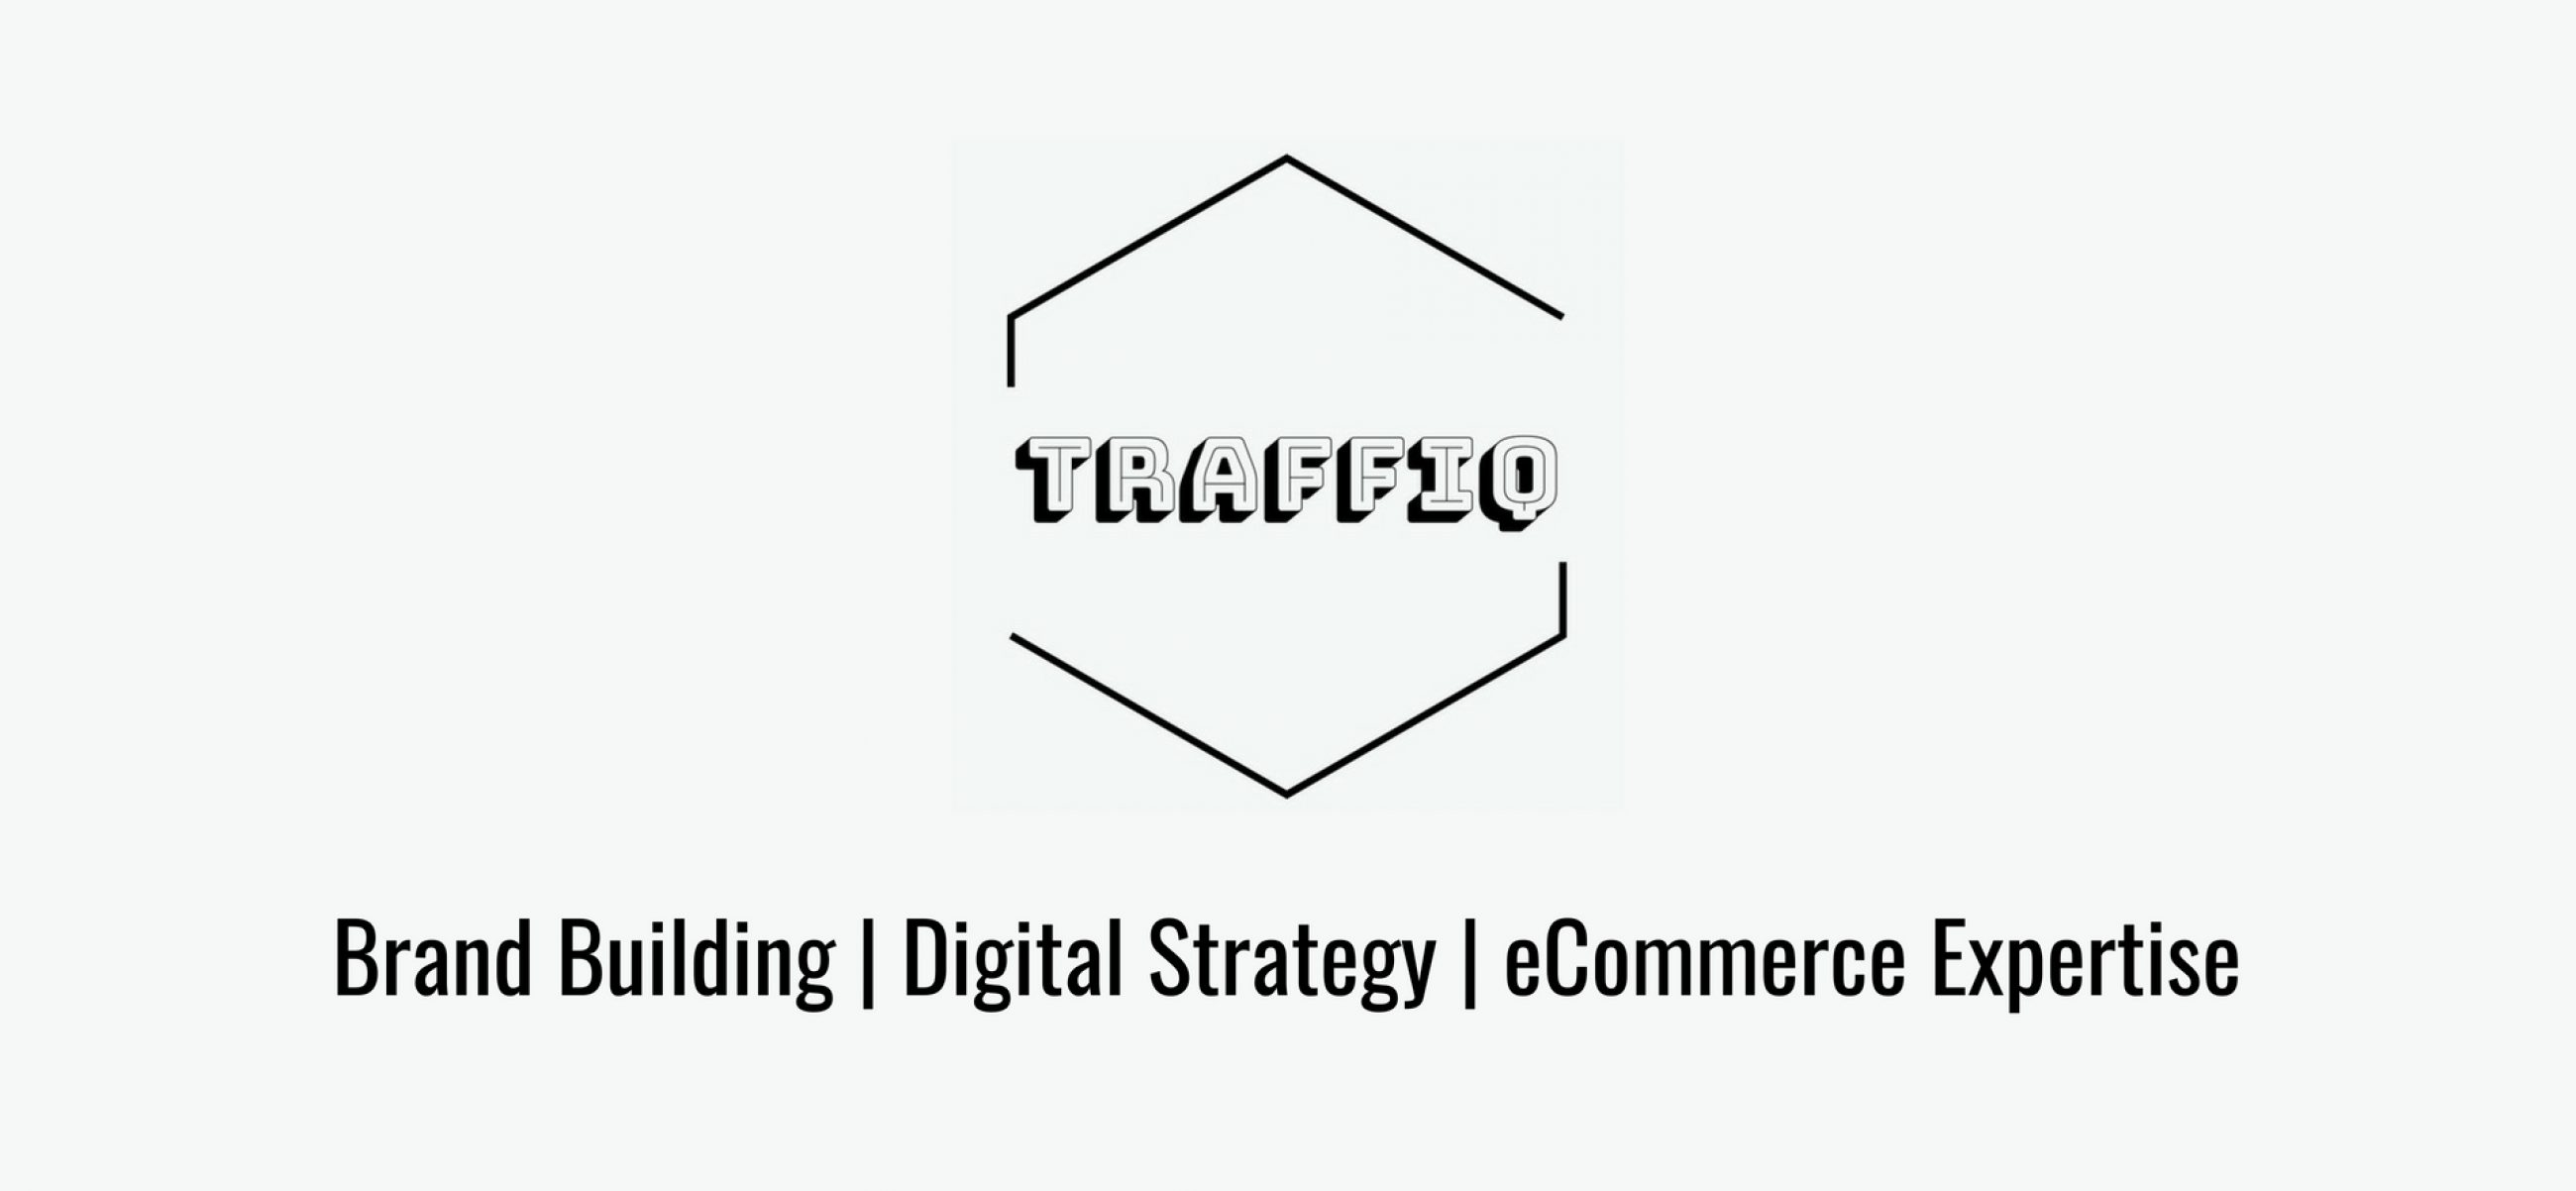 cropped-brand-building-digital-strategy-ecommerce-expertise-101.jpg